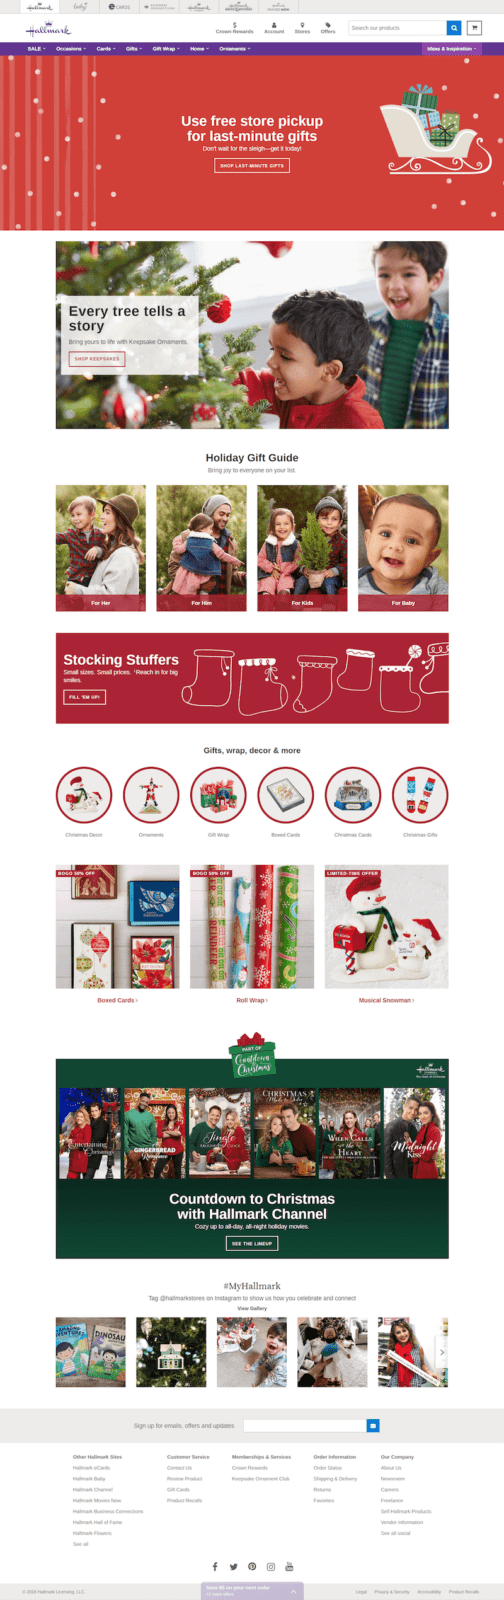 Holiday-ready web design UX example by Hallmark